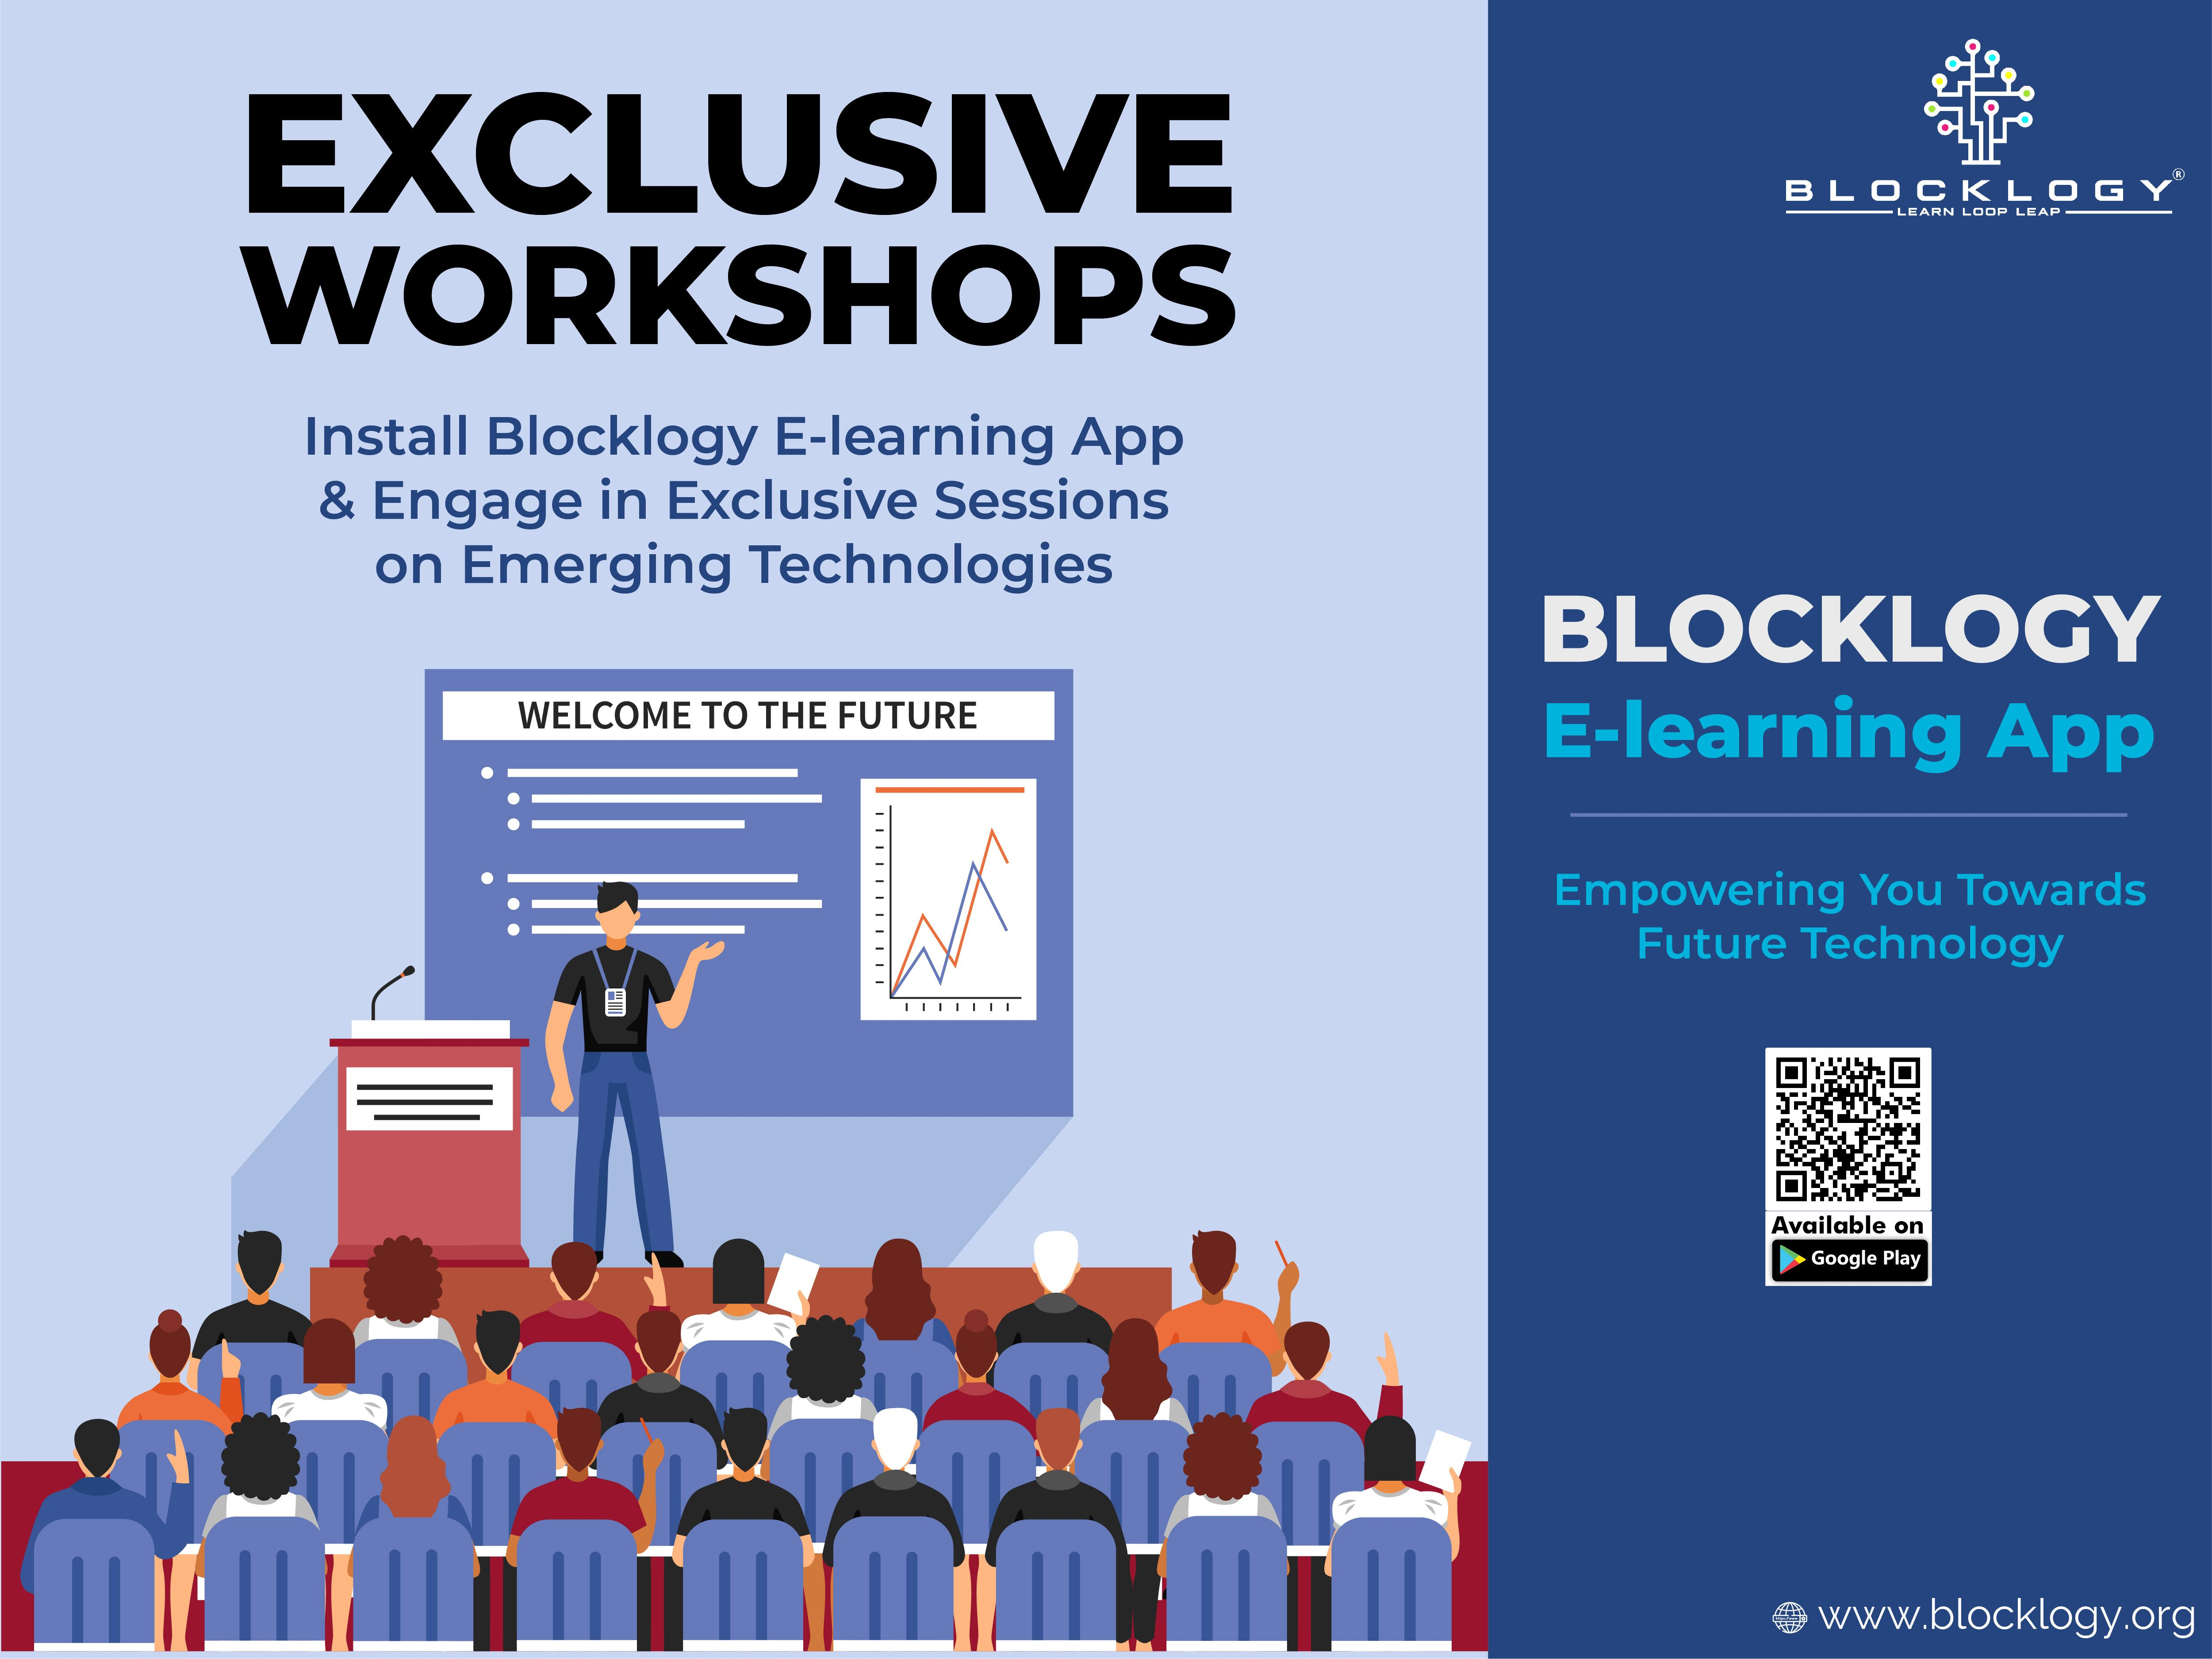 Blocklogy Exclusive Workshops Emerging Technology Elearning Workshop